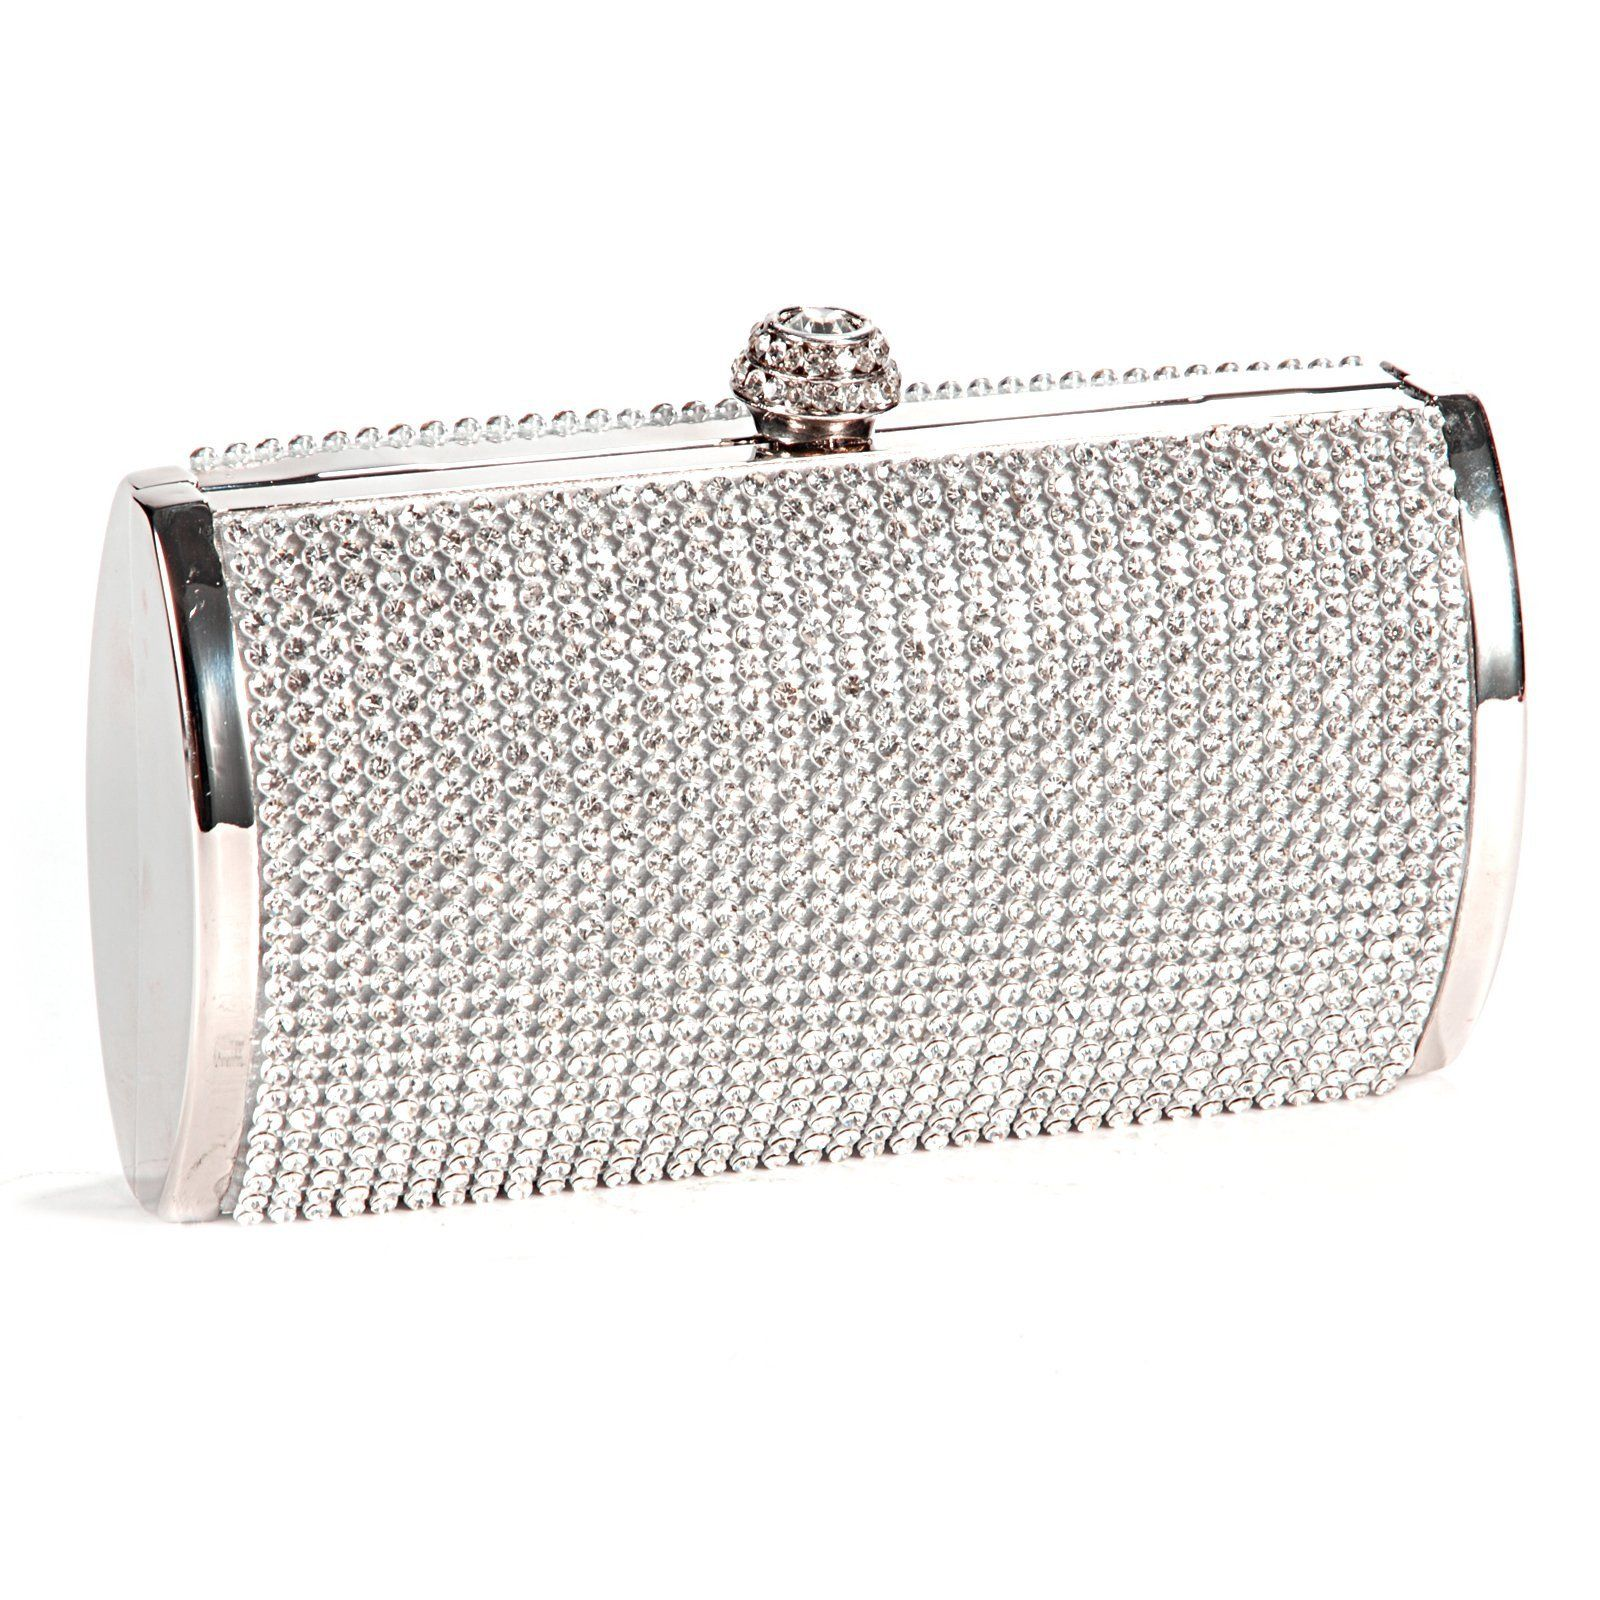 Minaudiere Bridal Satin Evening Bags Women Clasp Handheld Glitter Wedding Clutch